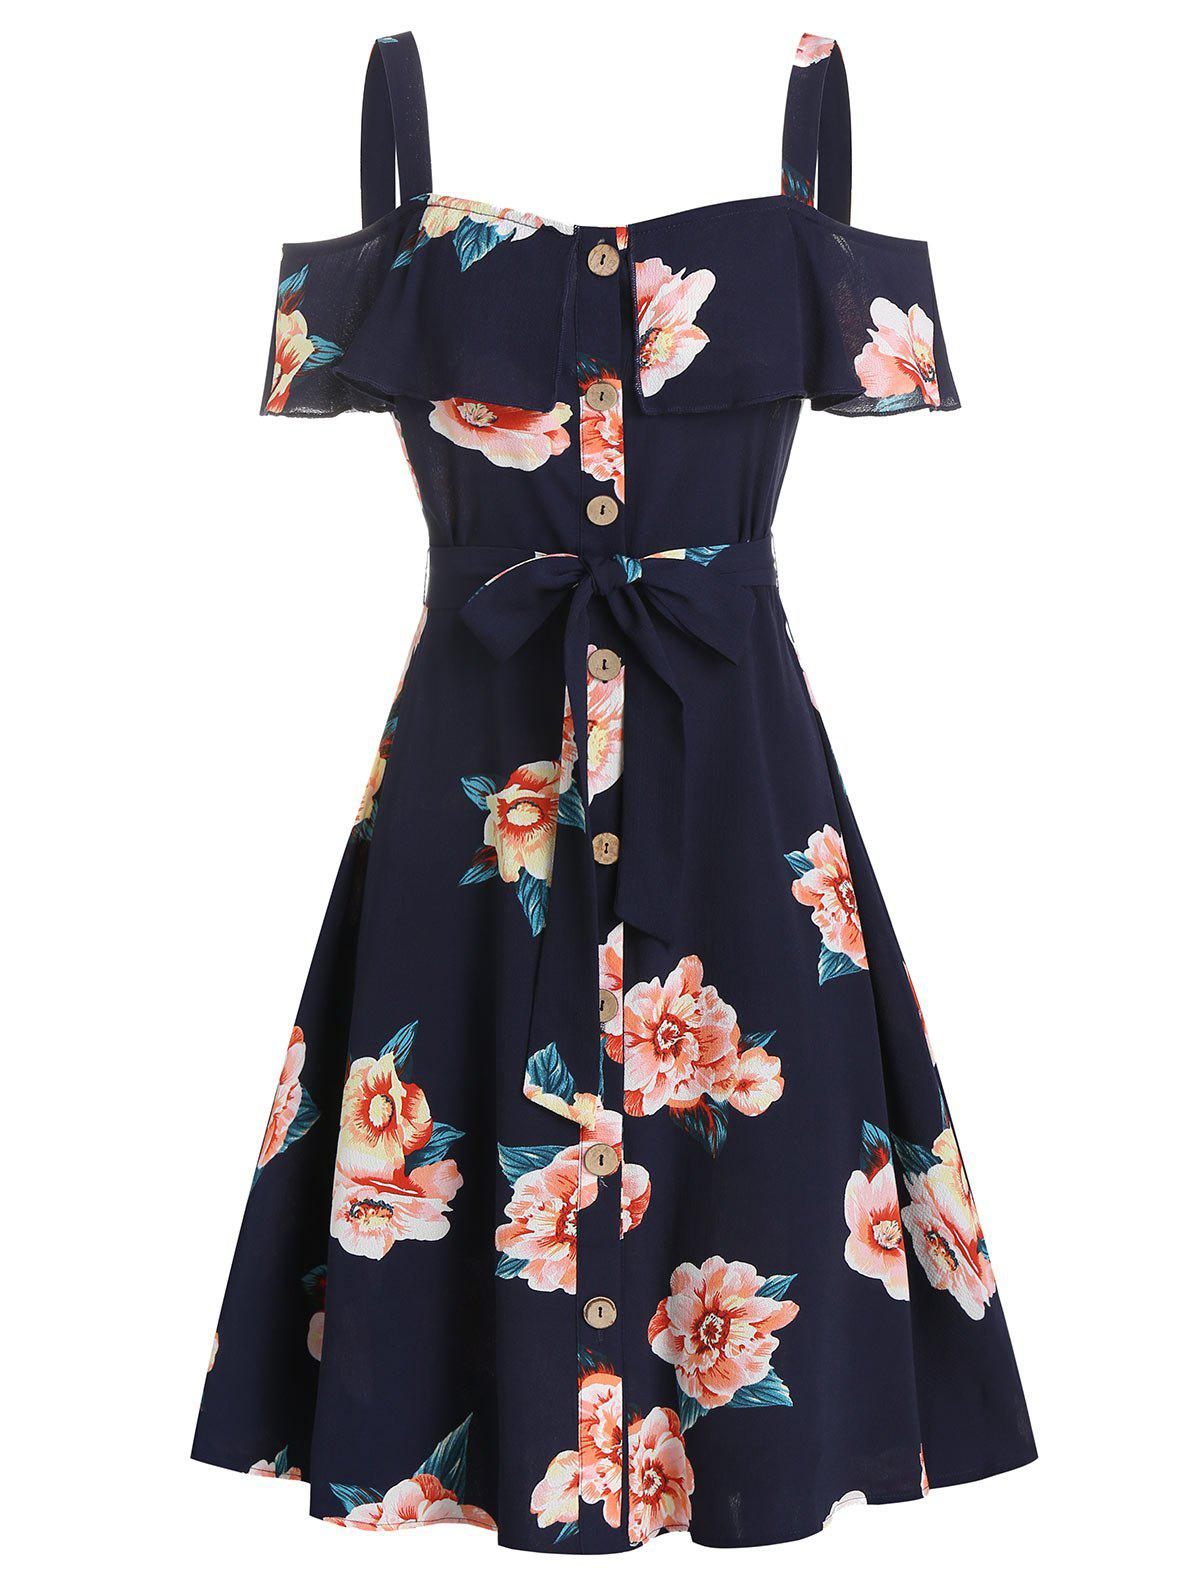 Flower Print Open Shoulder Belted Dress - CADETBLUE 3XL